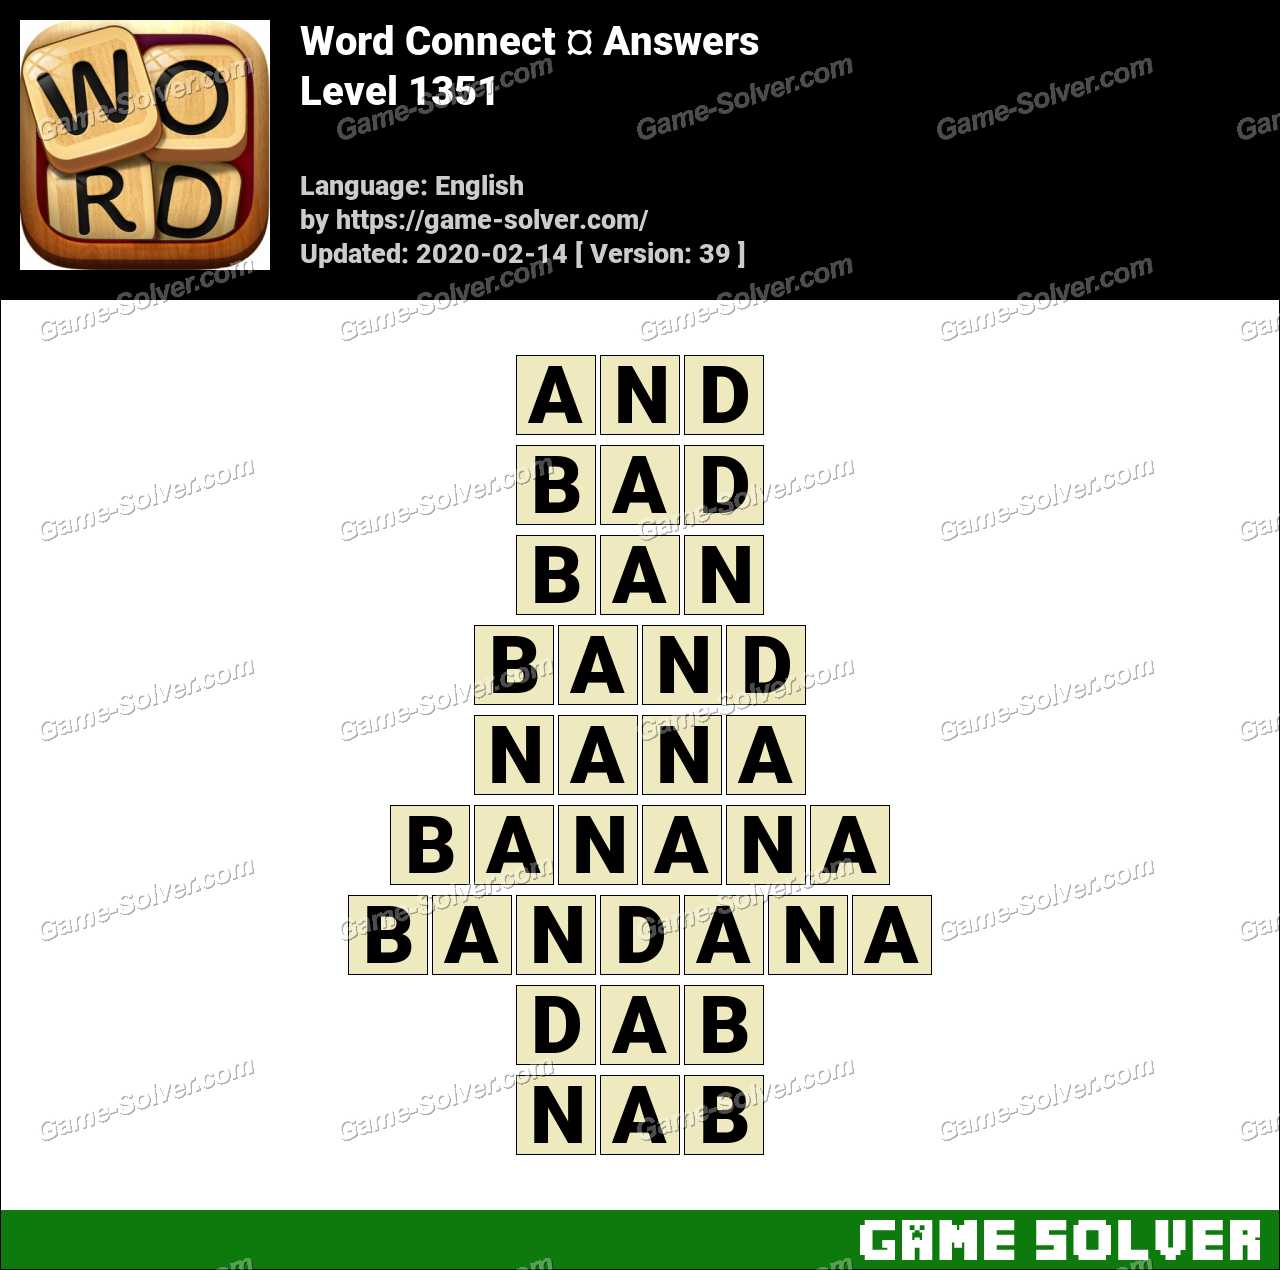 Word Connect Level 1351 Answers